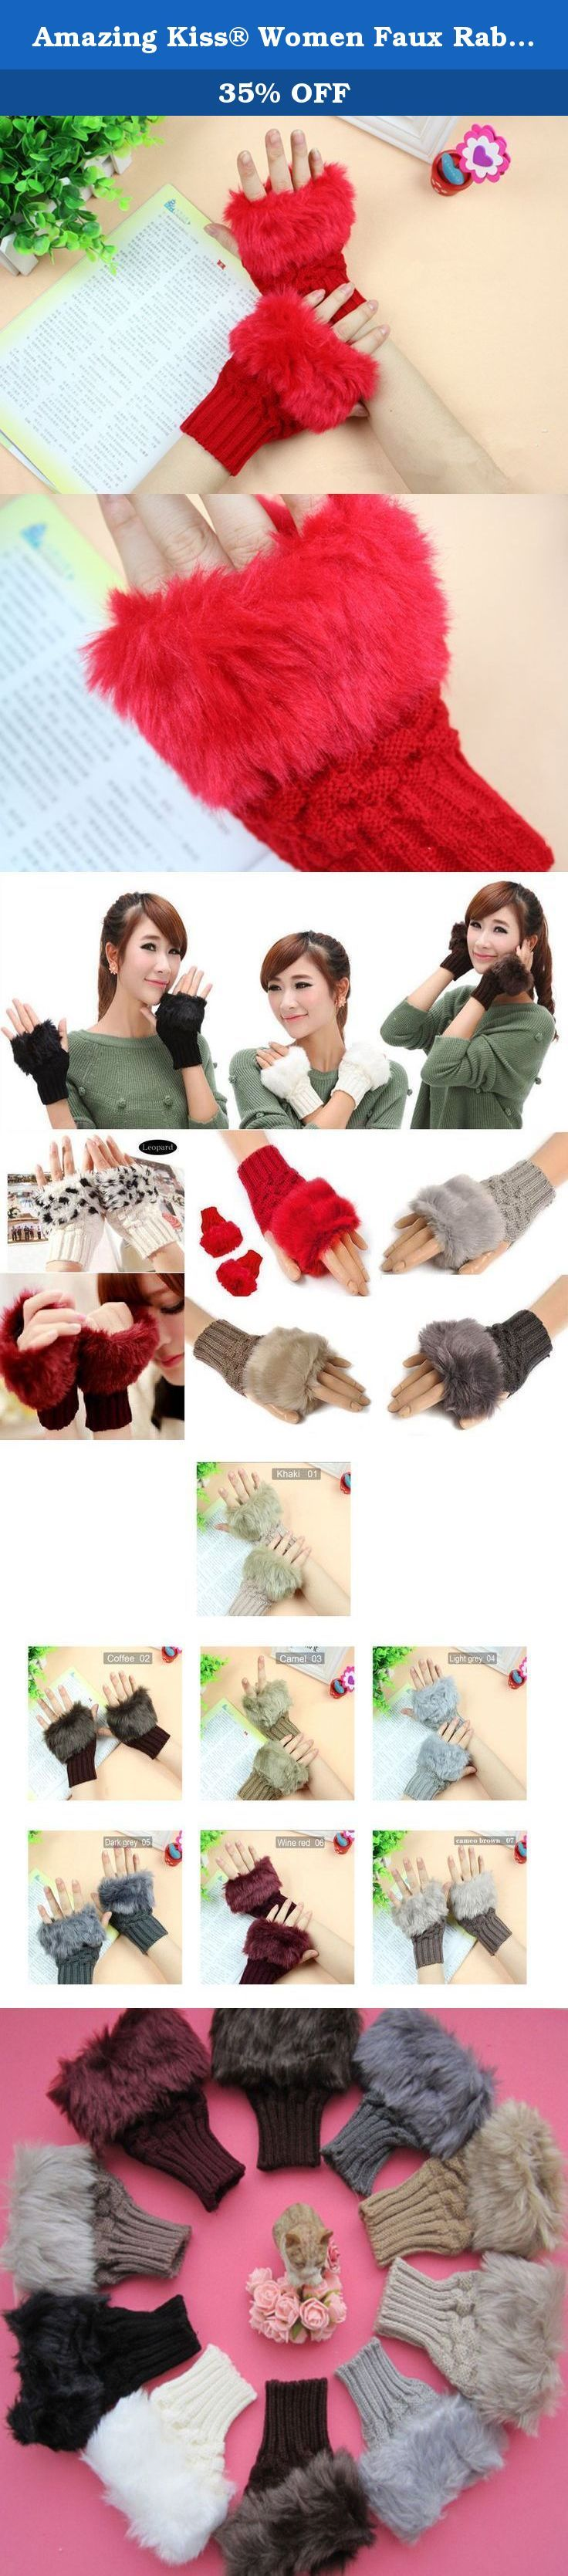 Amazing Kiss® Women Faux Rabbit Fur Hand Wrist Winter Warmer Knitted Fingerless Gloves New Fashion Winter Arm Warmer Fingerless Gloves Knitted Fur Trim Gloves Mitten (Red 01). Specifications: Material: Faux Wool + knitted Colour: As pictures showing Red 01 Khaki 02 Black 03 White 04 Coffee 05 Light Gray 06 Wine 07 Dark Gray 08 Camel 09 Size: 13cm*9cm(Width)/5.11''*3.54'' Weight: 45g Package includes: 1 pair x Gloves ATTENTION: 1.It may have little color difference according to different...